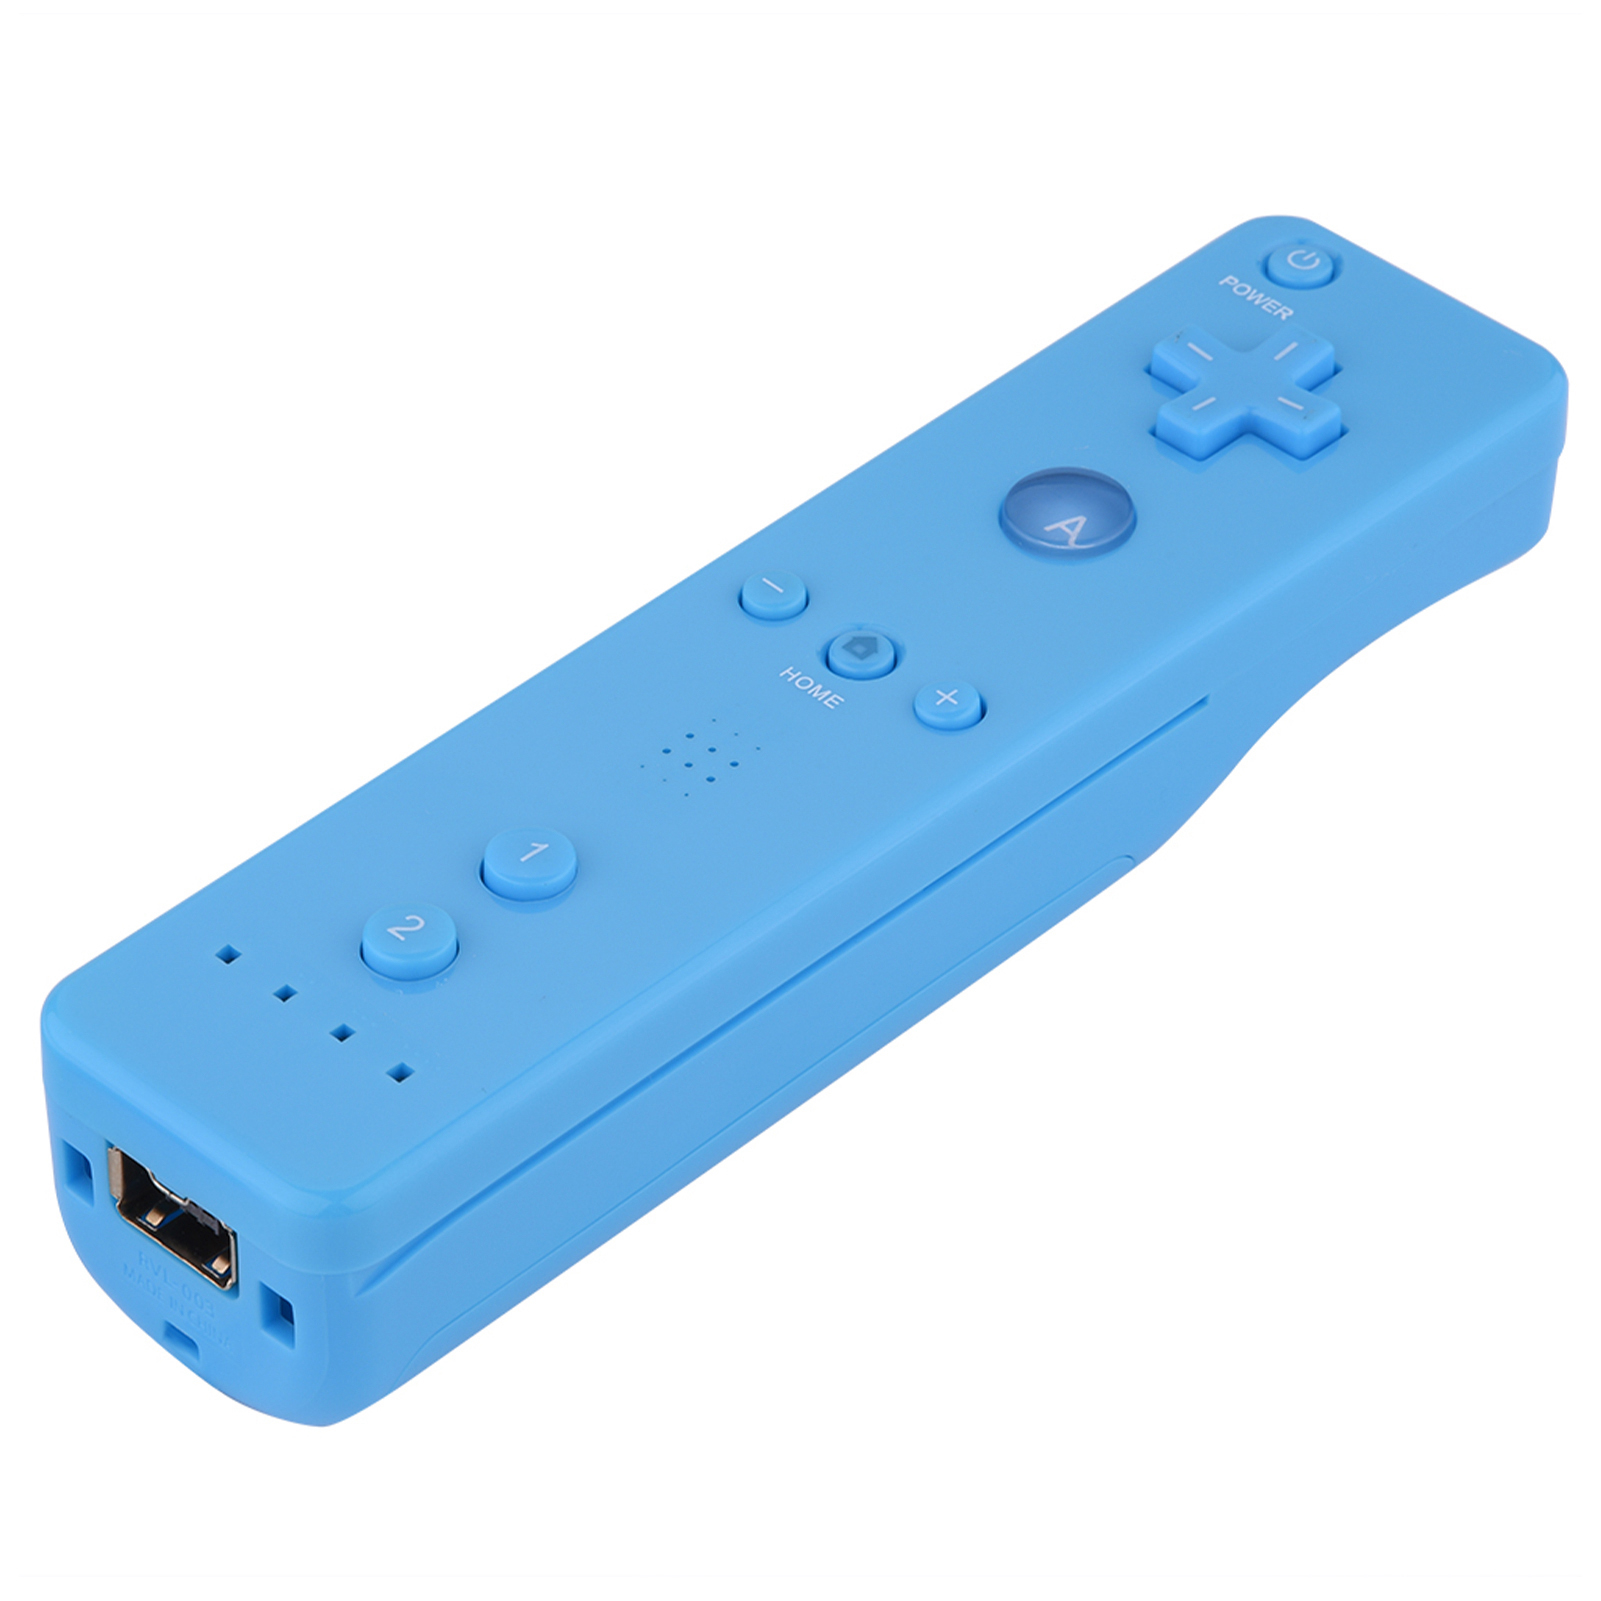 Built-in-Motion-Plus-Remote-Nunchuck-Controller-Cover-Case-for-Nintendo-Wii-WiiU miniature 35